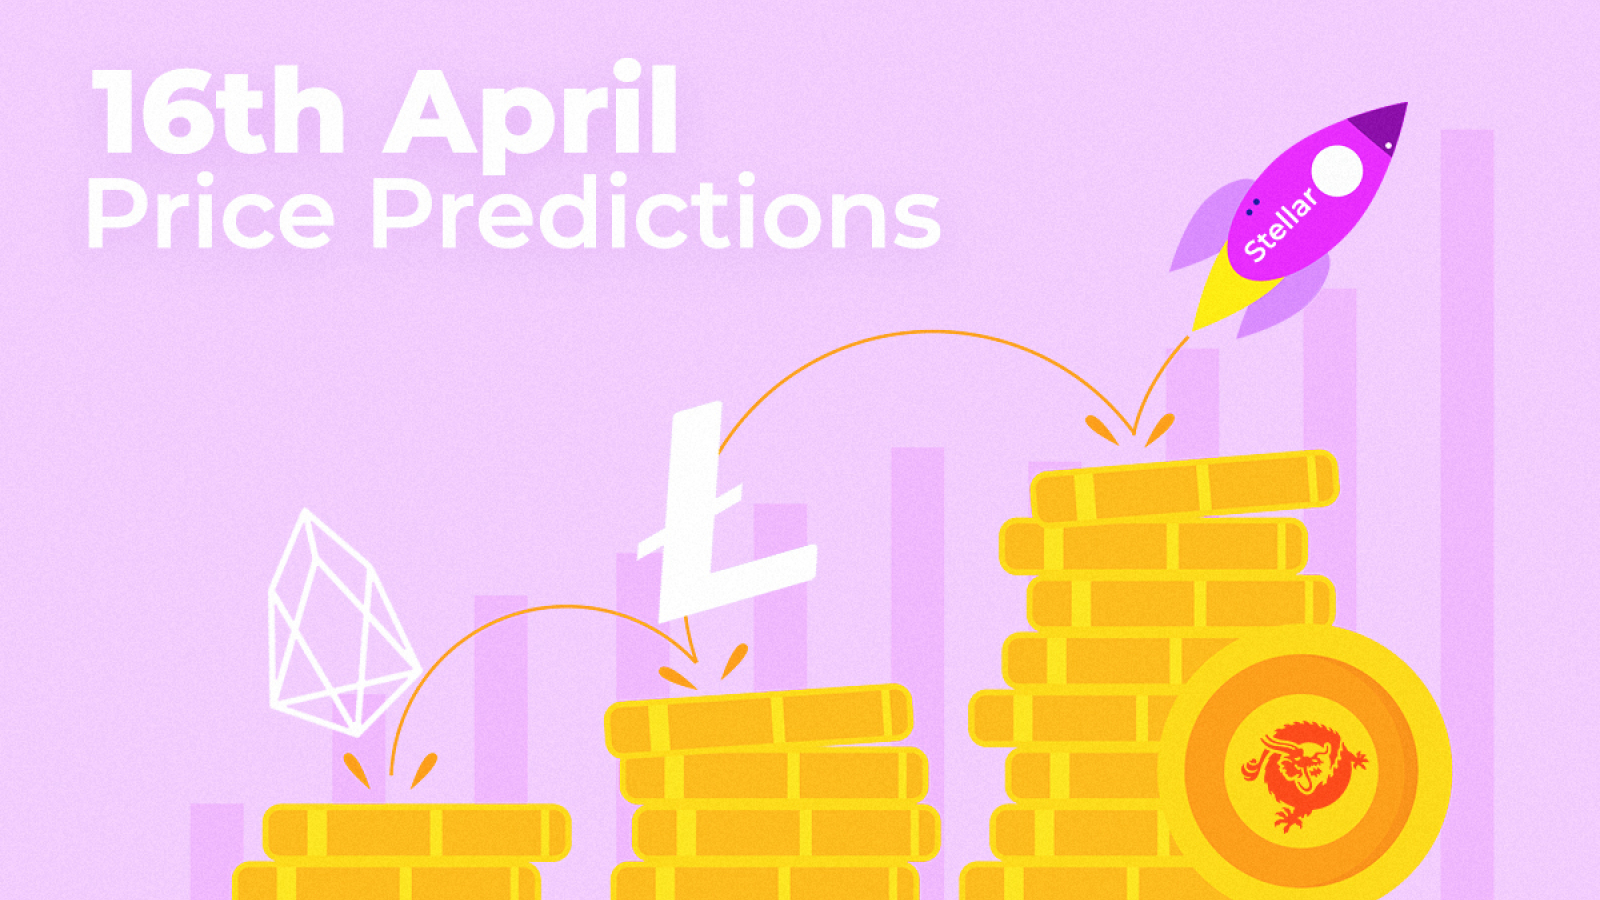 xlm cryptocurrency price prediction